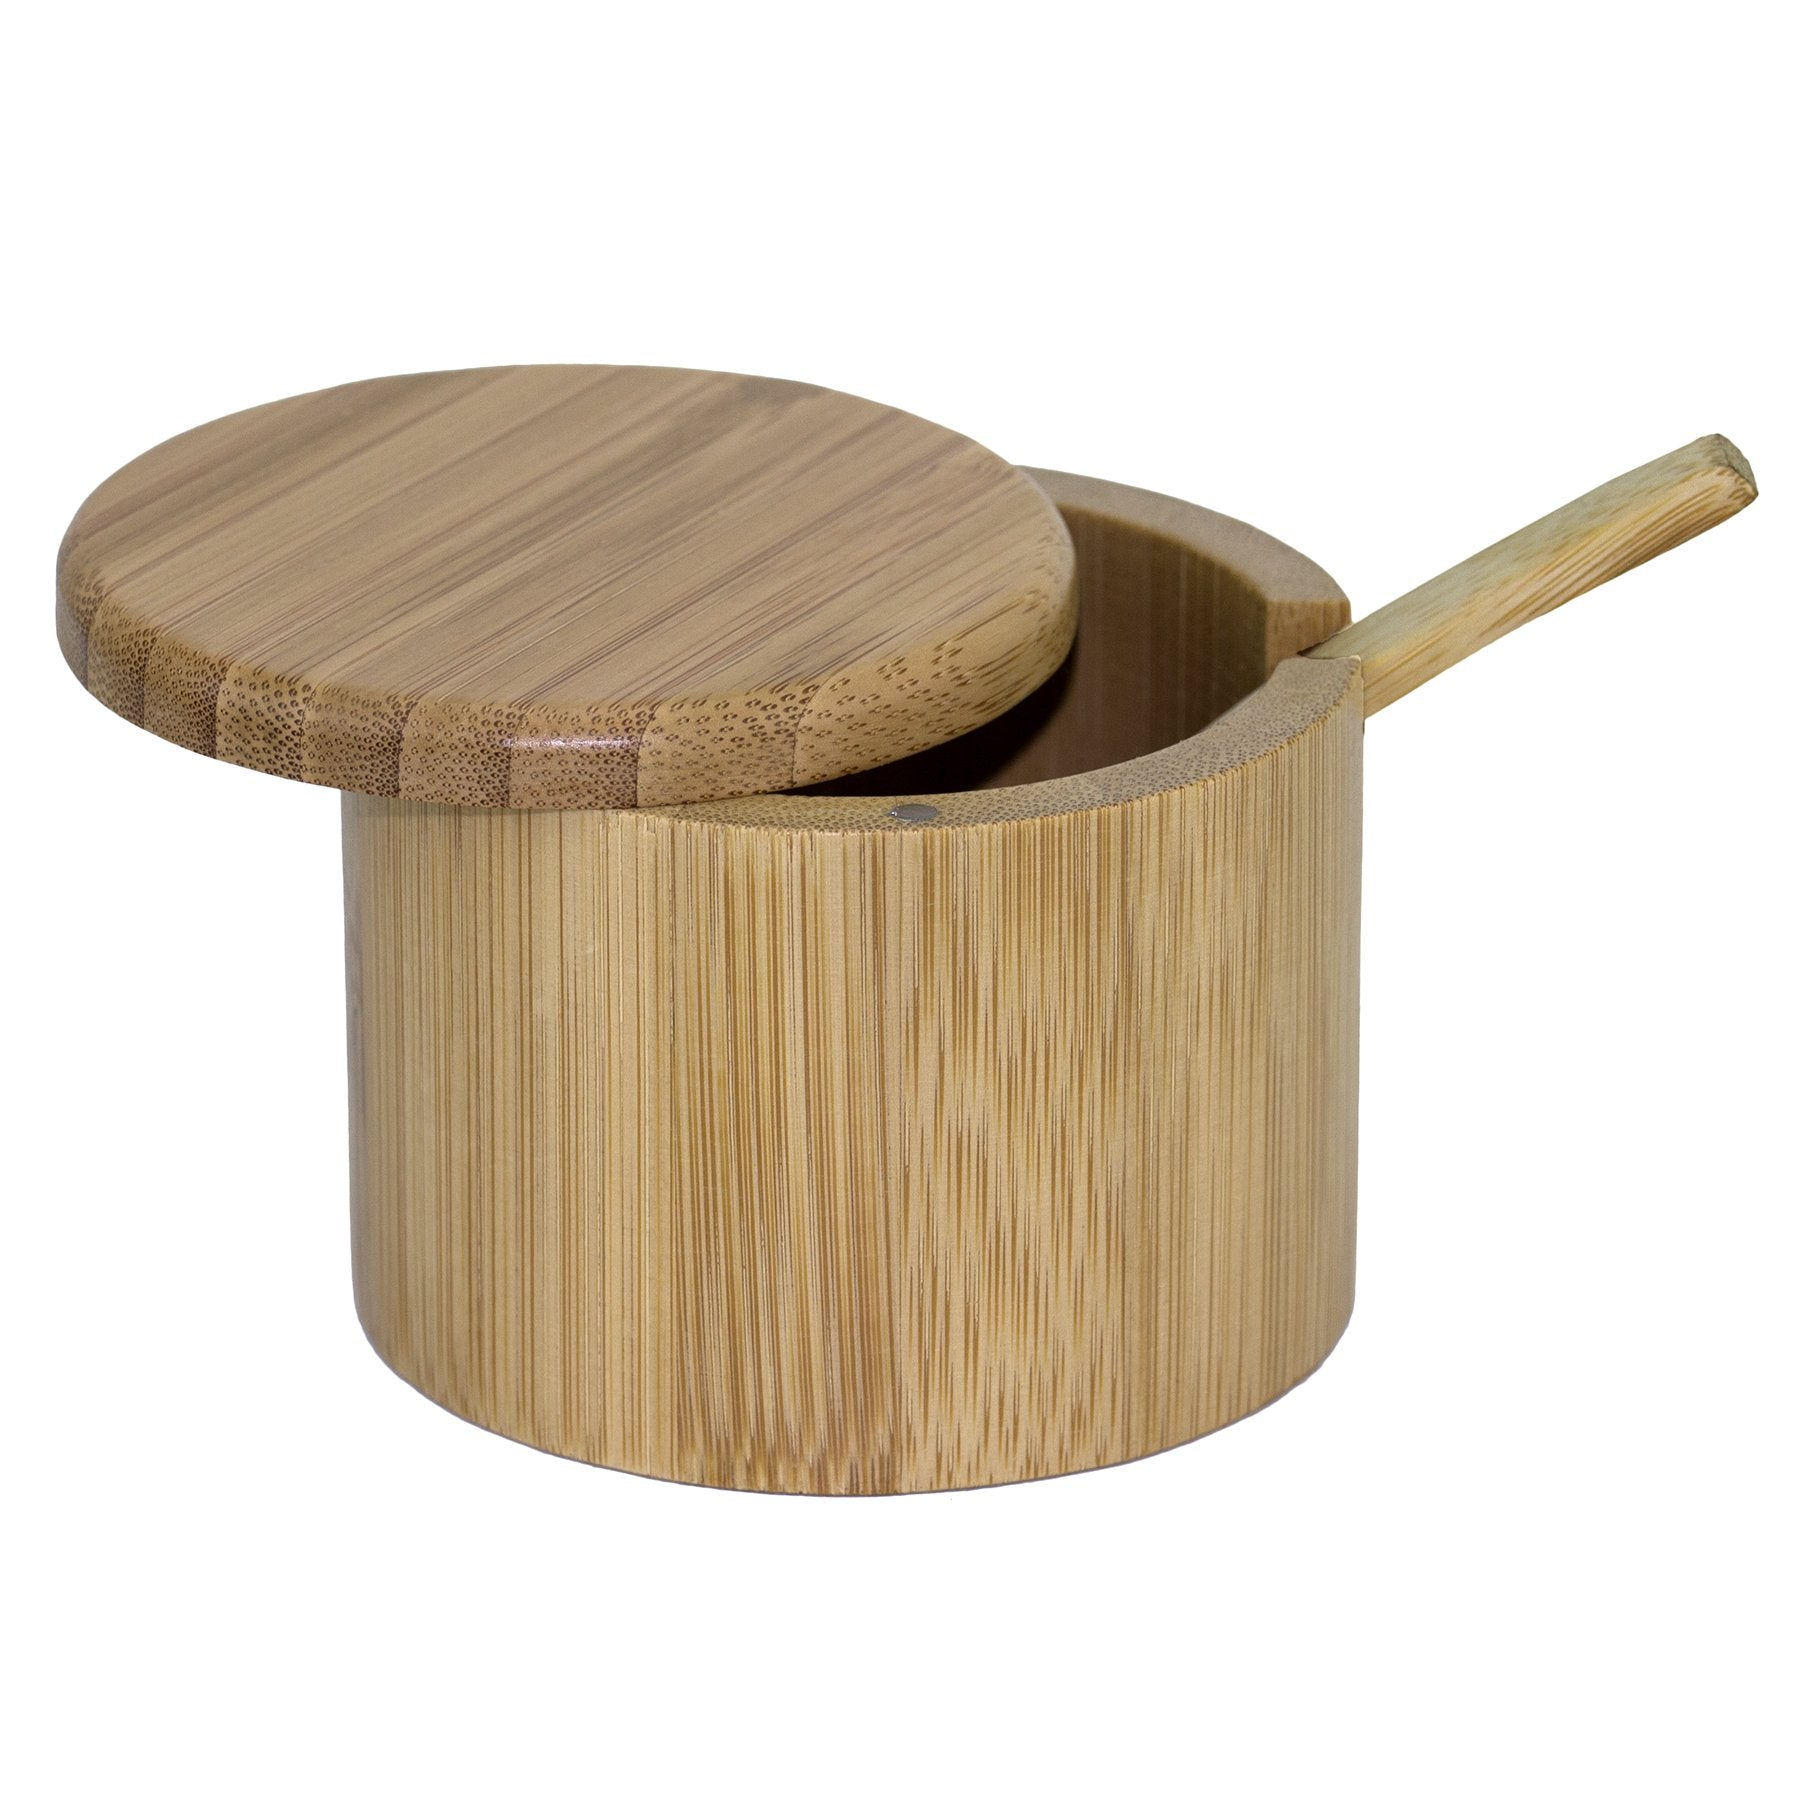 Totally Bamboo Little Dipper Bamboo Salt Box with Spoon